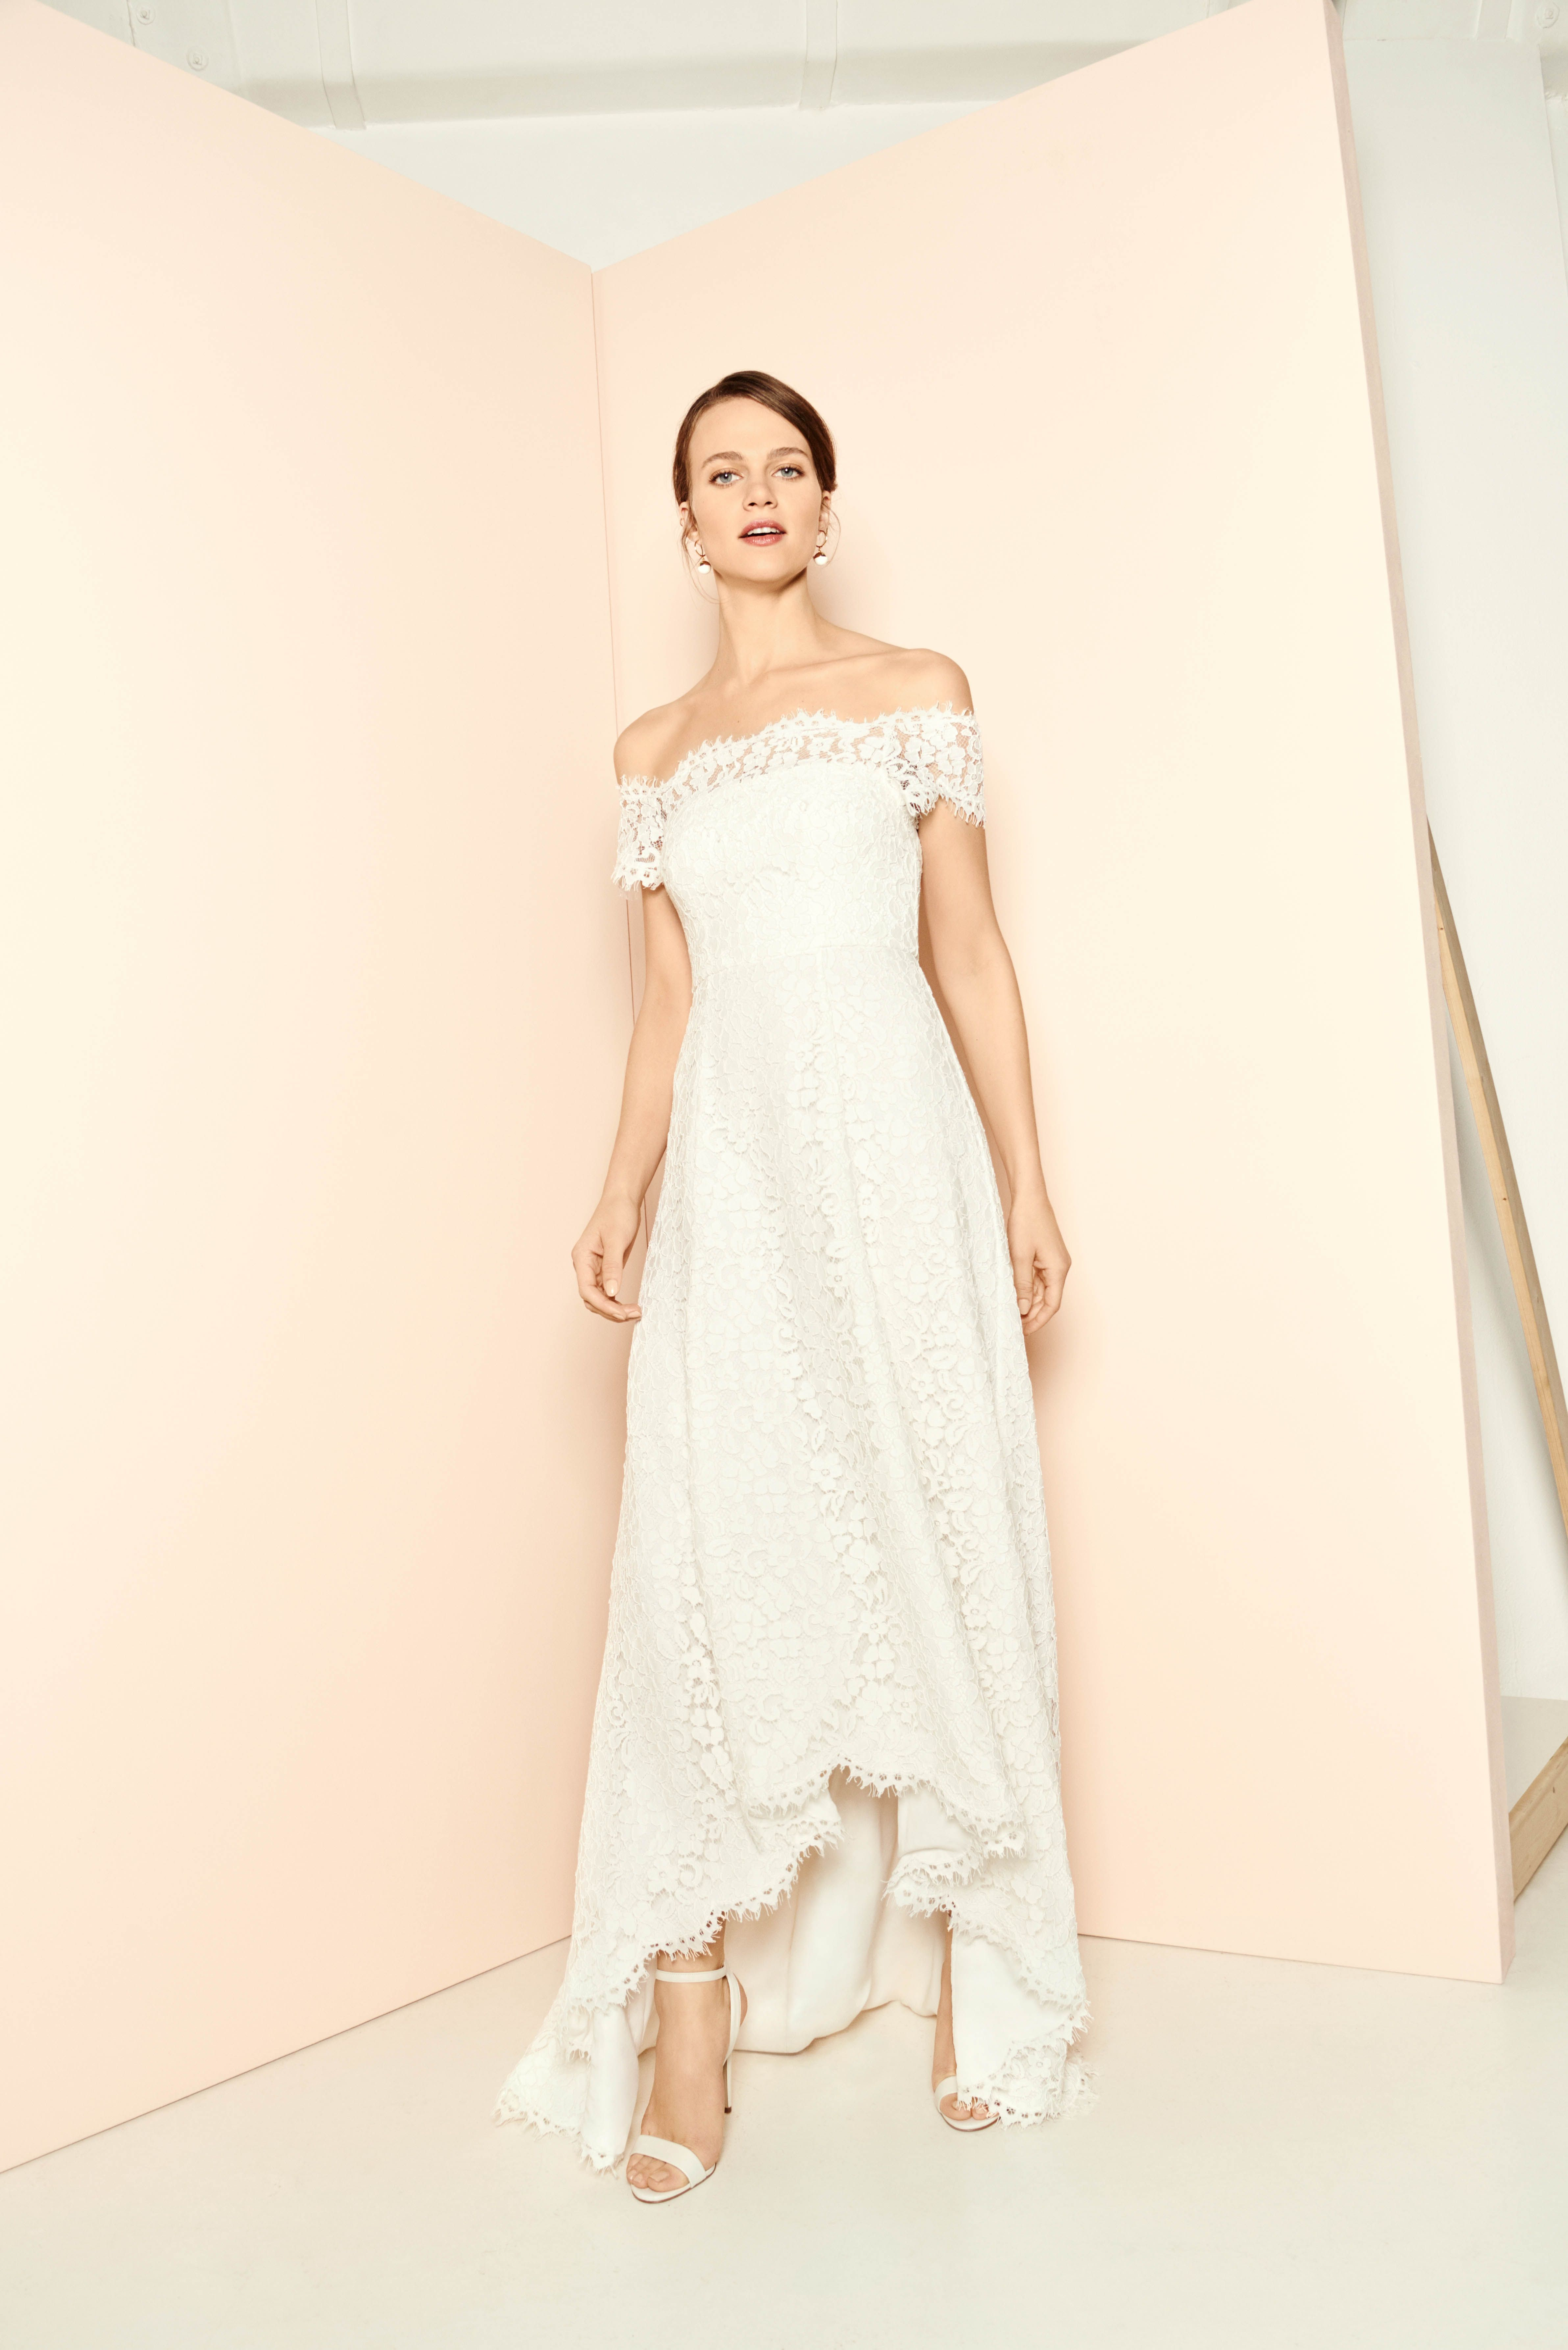 Best wedding dresses for registry office  Whistles Wedding   S E T  Pinterest  Wedding and Gowns